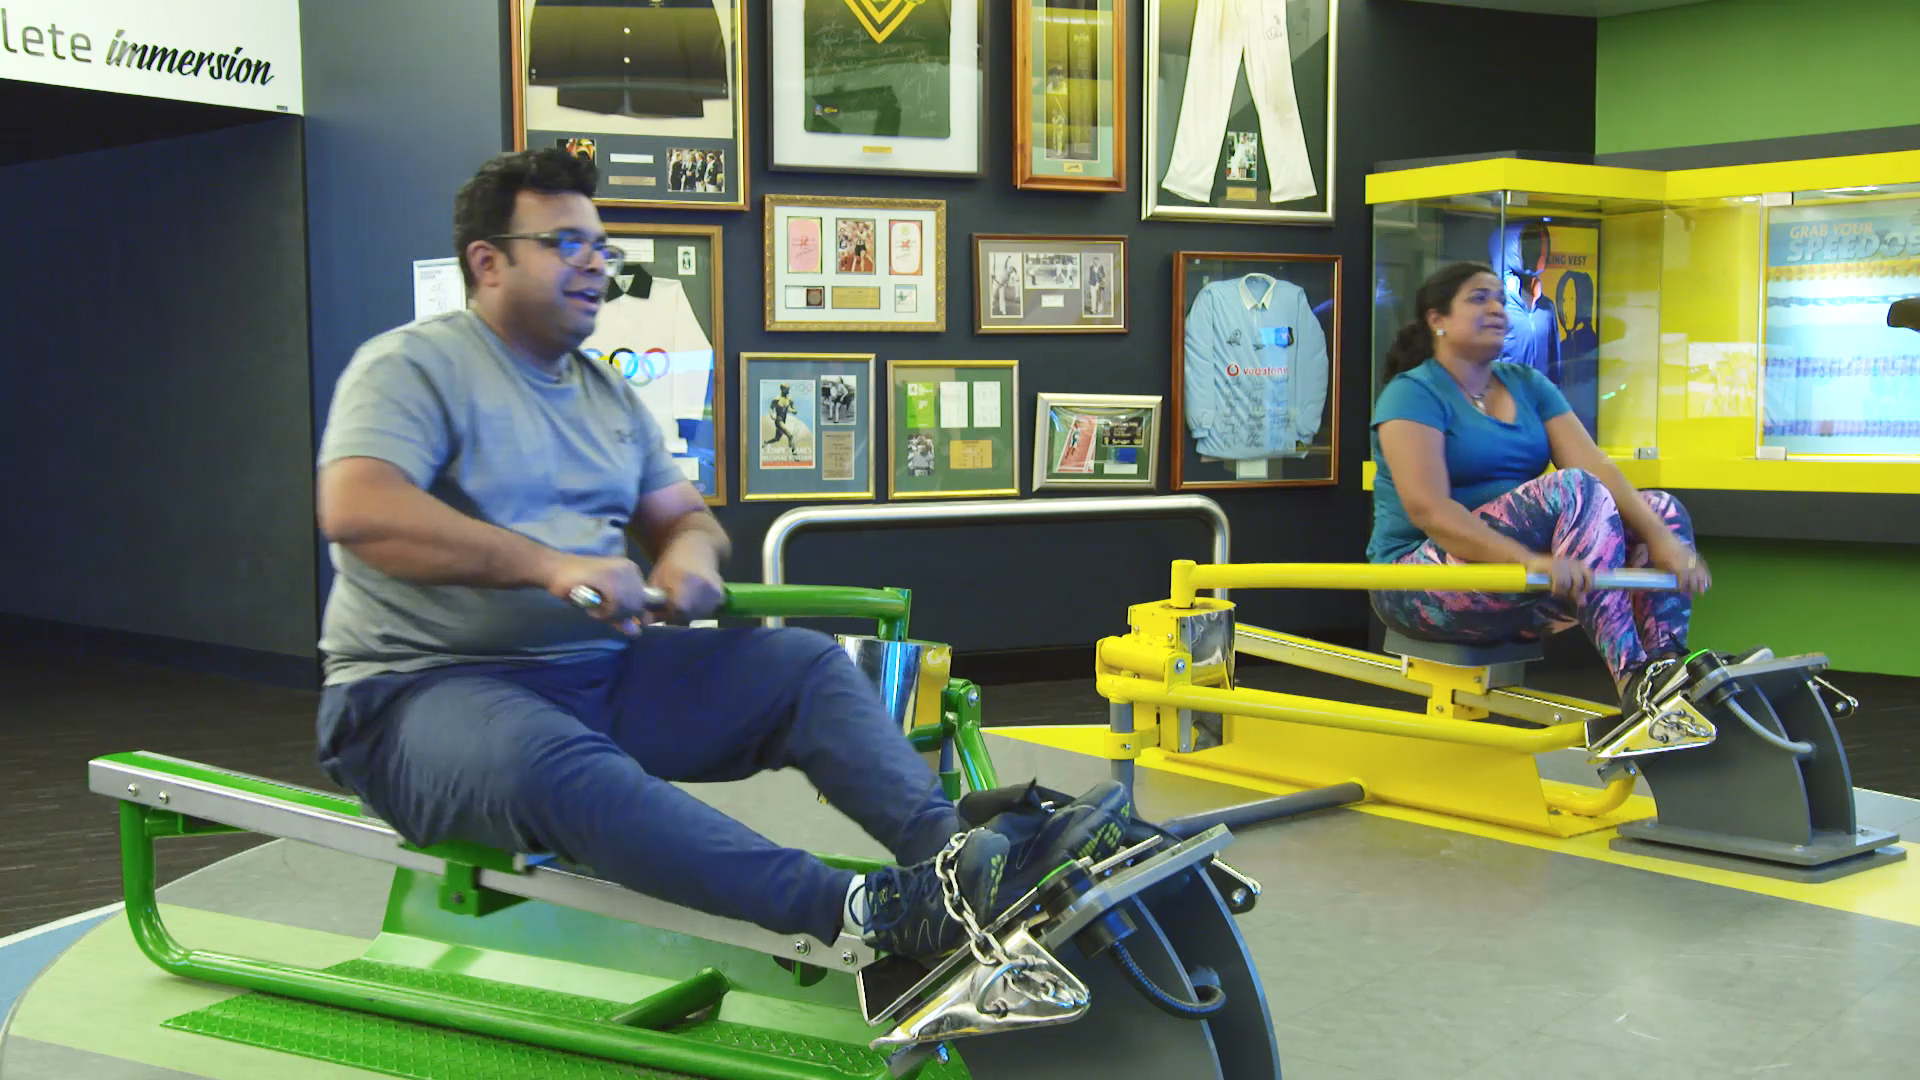 Rowing machines prove too much for Deepesh and Sage